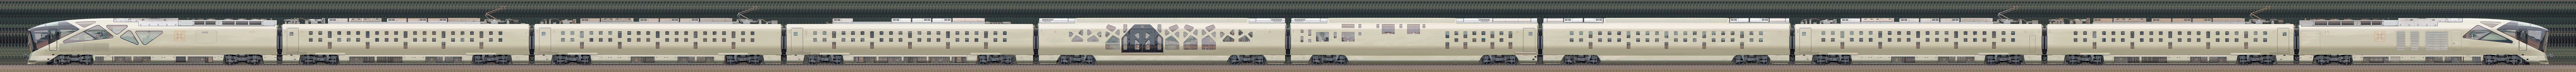 JR東日本E001形「TRAIN SUITE 四季島」(東北本線内海側)の編成サイドビュー